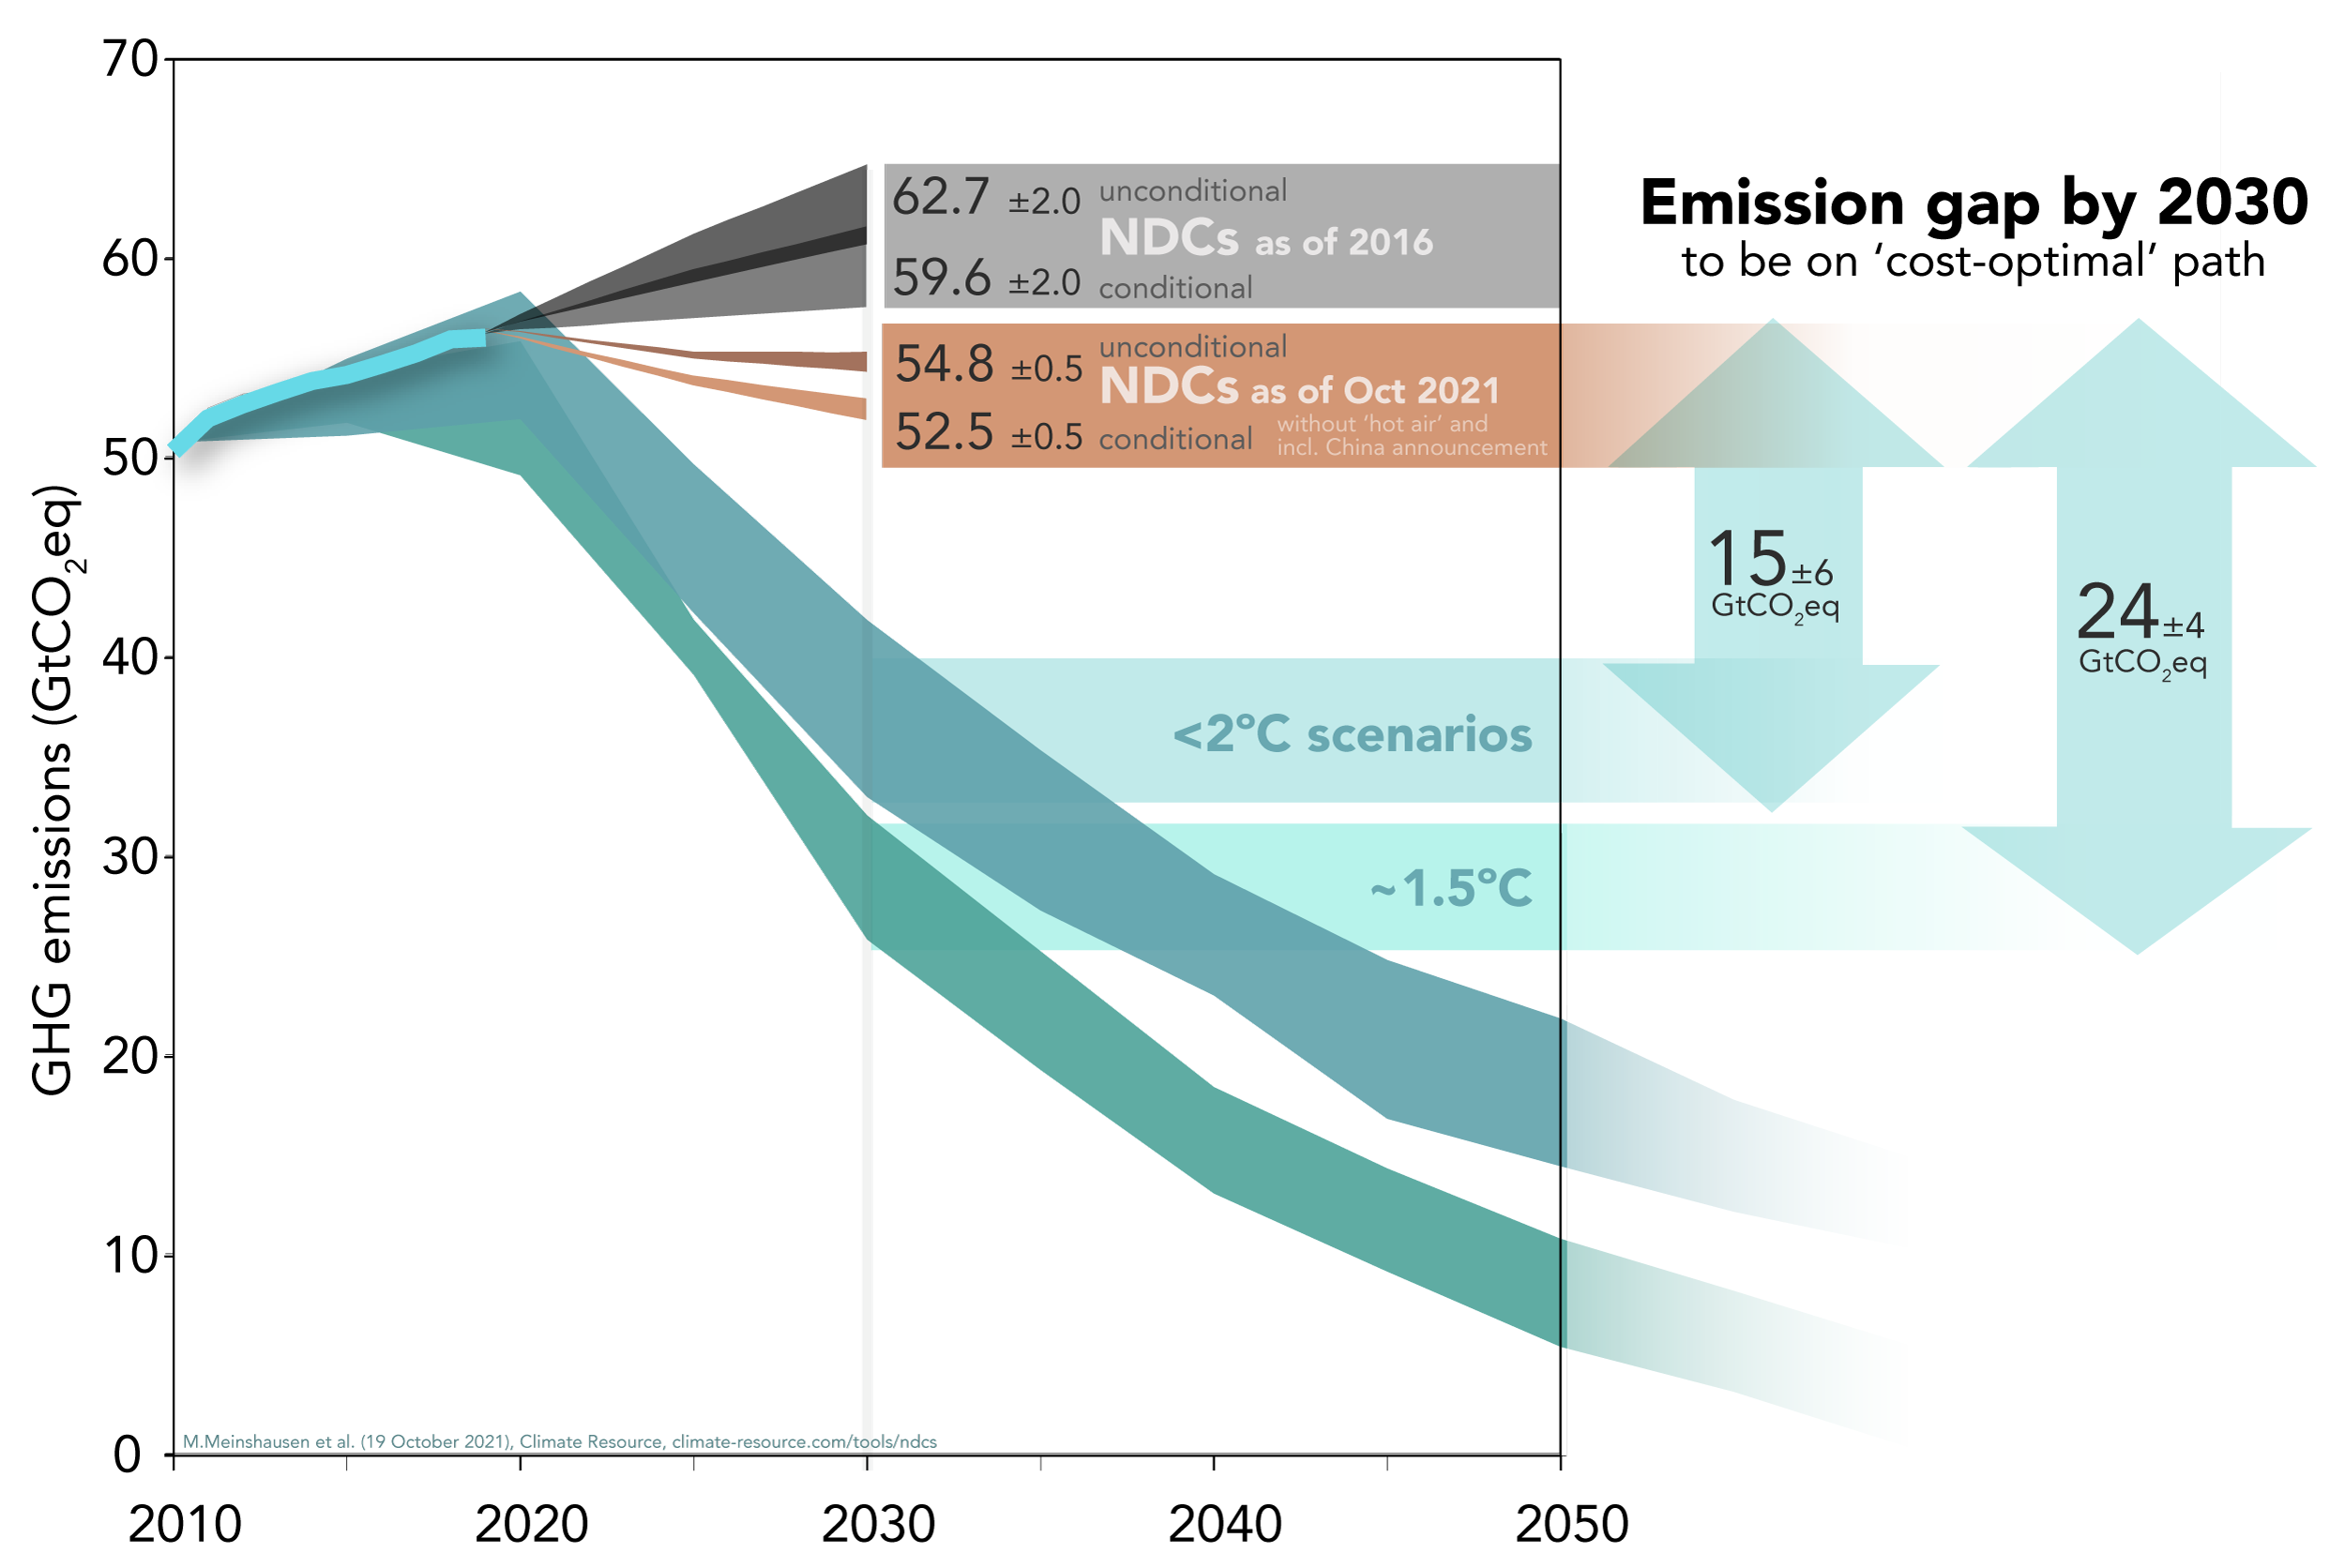 15 GtCO2 eq emissions gap to be on a 2 degree cost optimal path by 2030